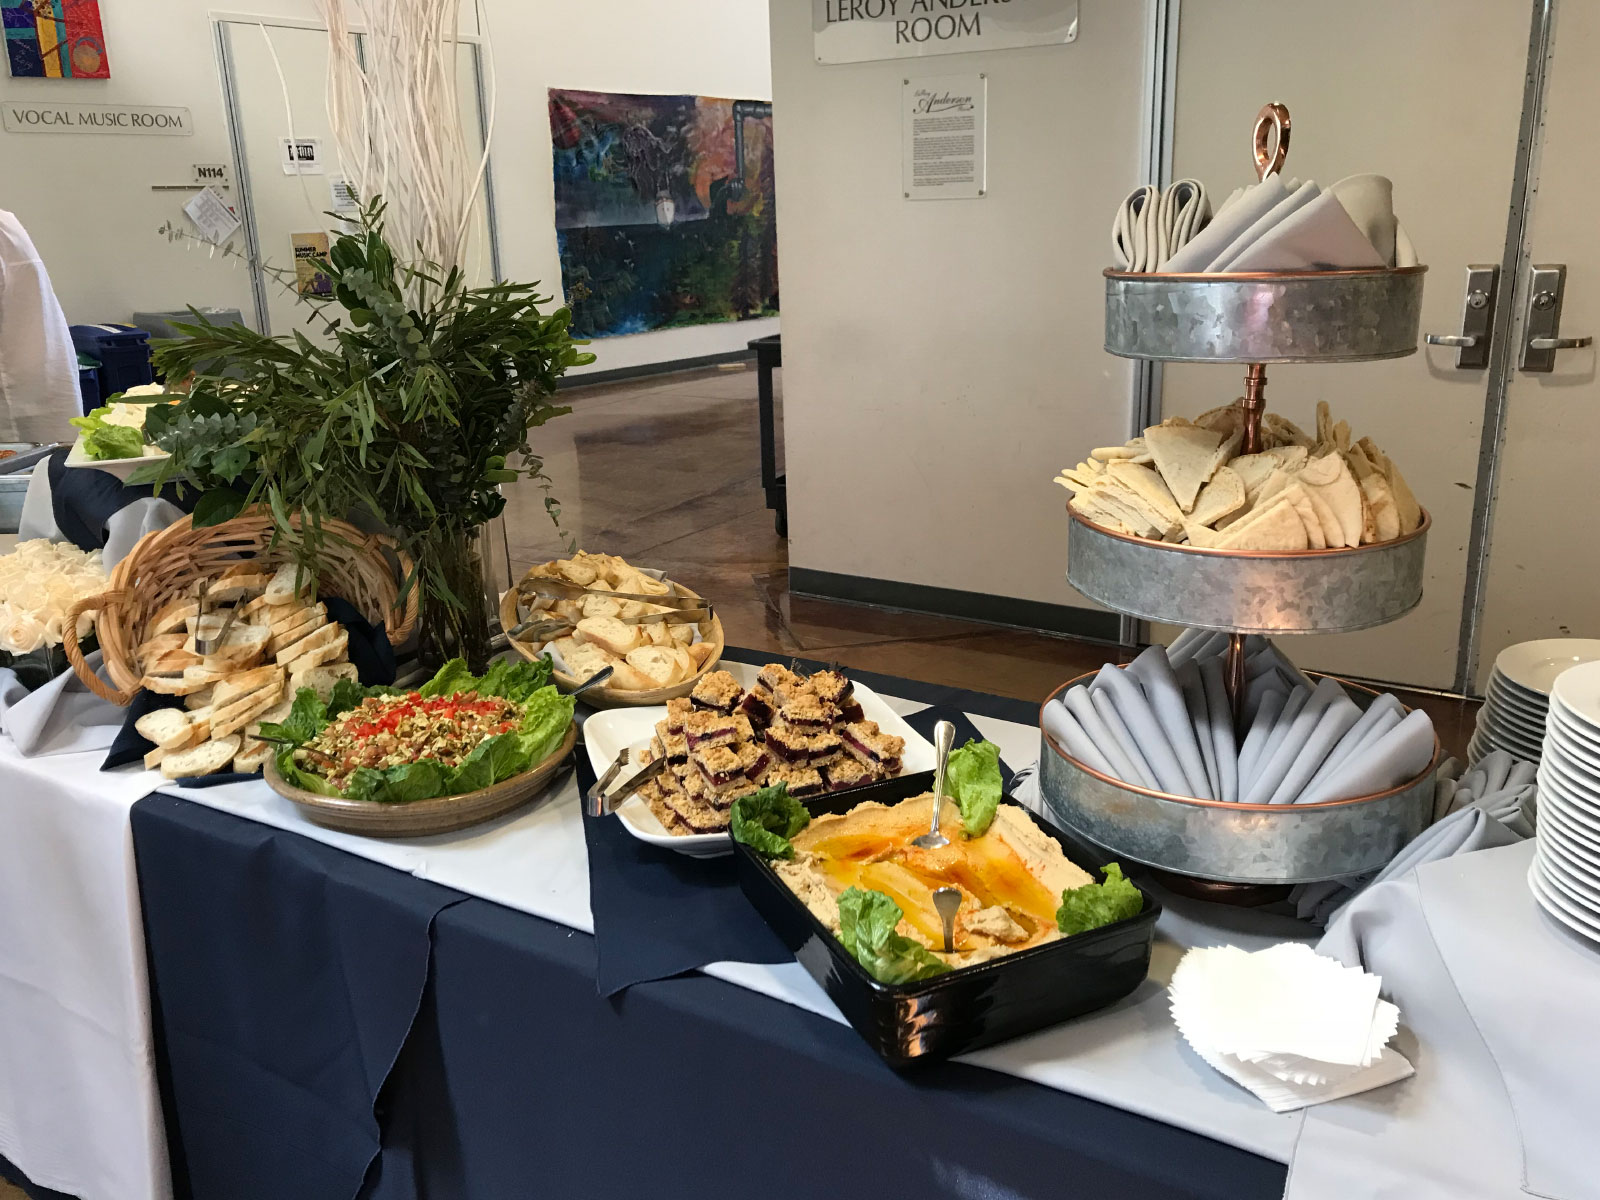 Catered food of salad, brownies, pita bread and sliced peppers at the Oregon City campus